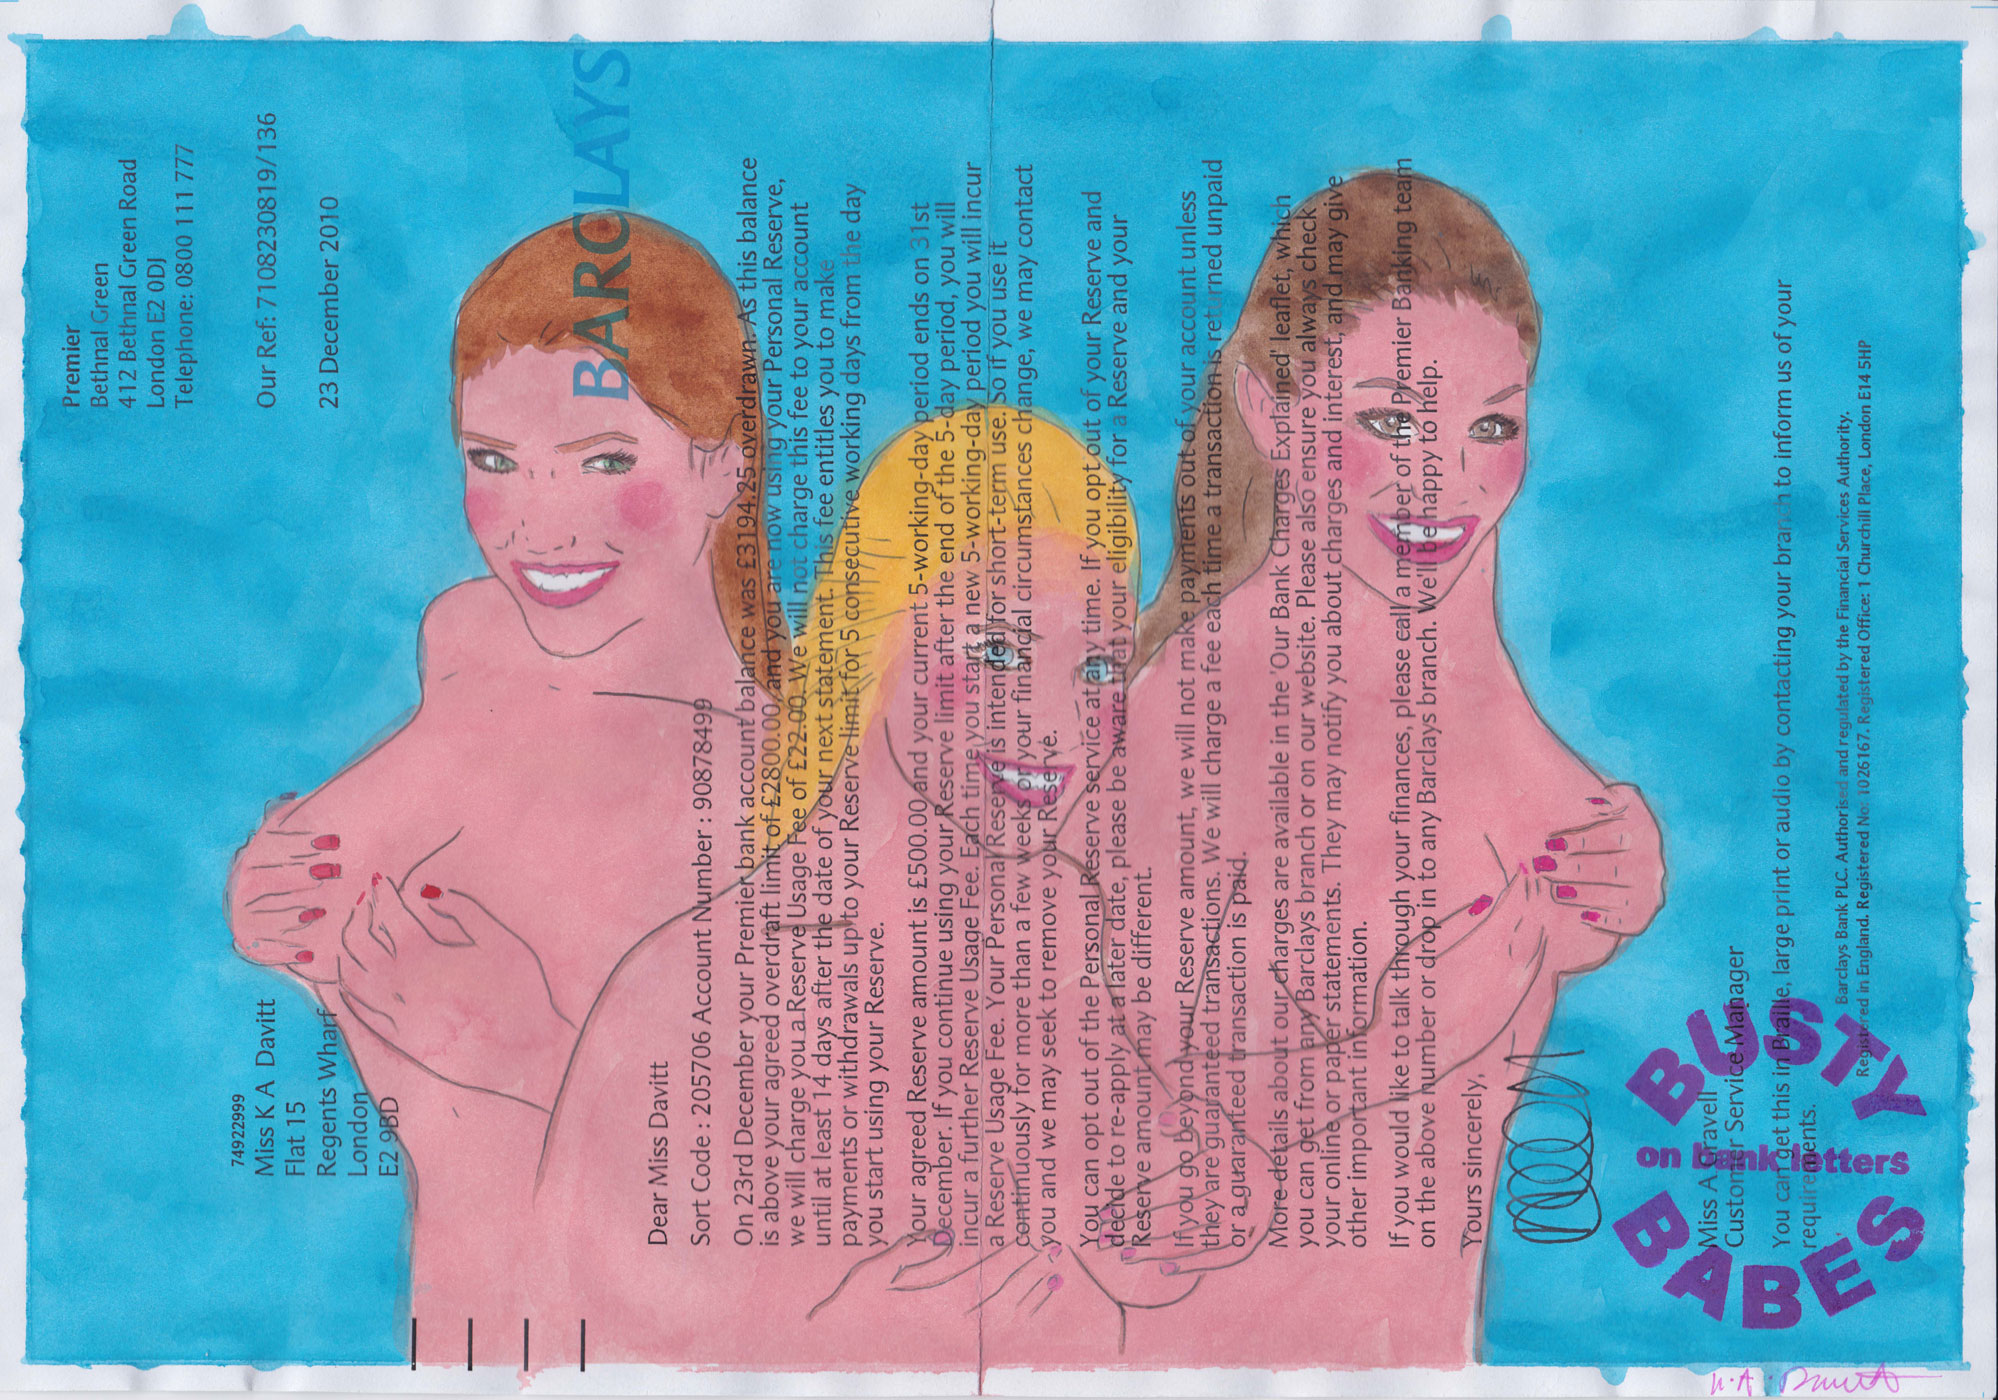 Kelly-Anne Davitt - Busty Babes On Bank Letters